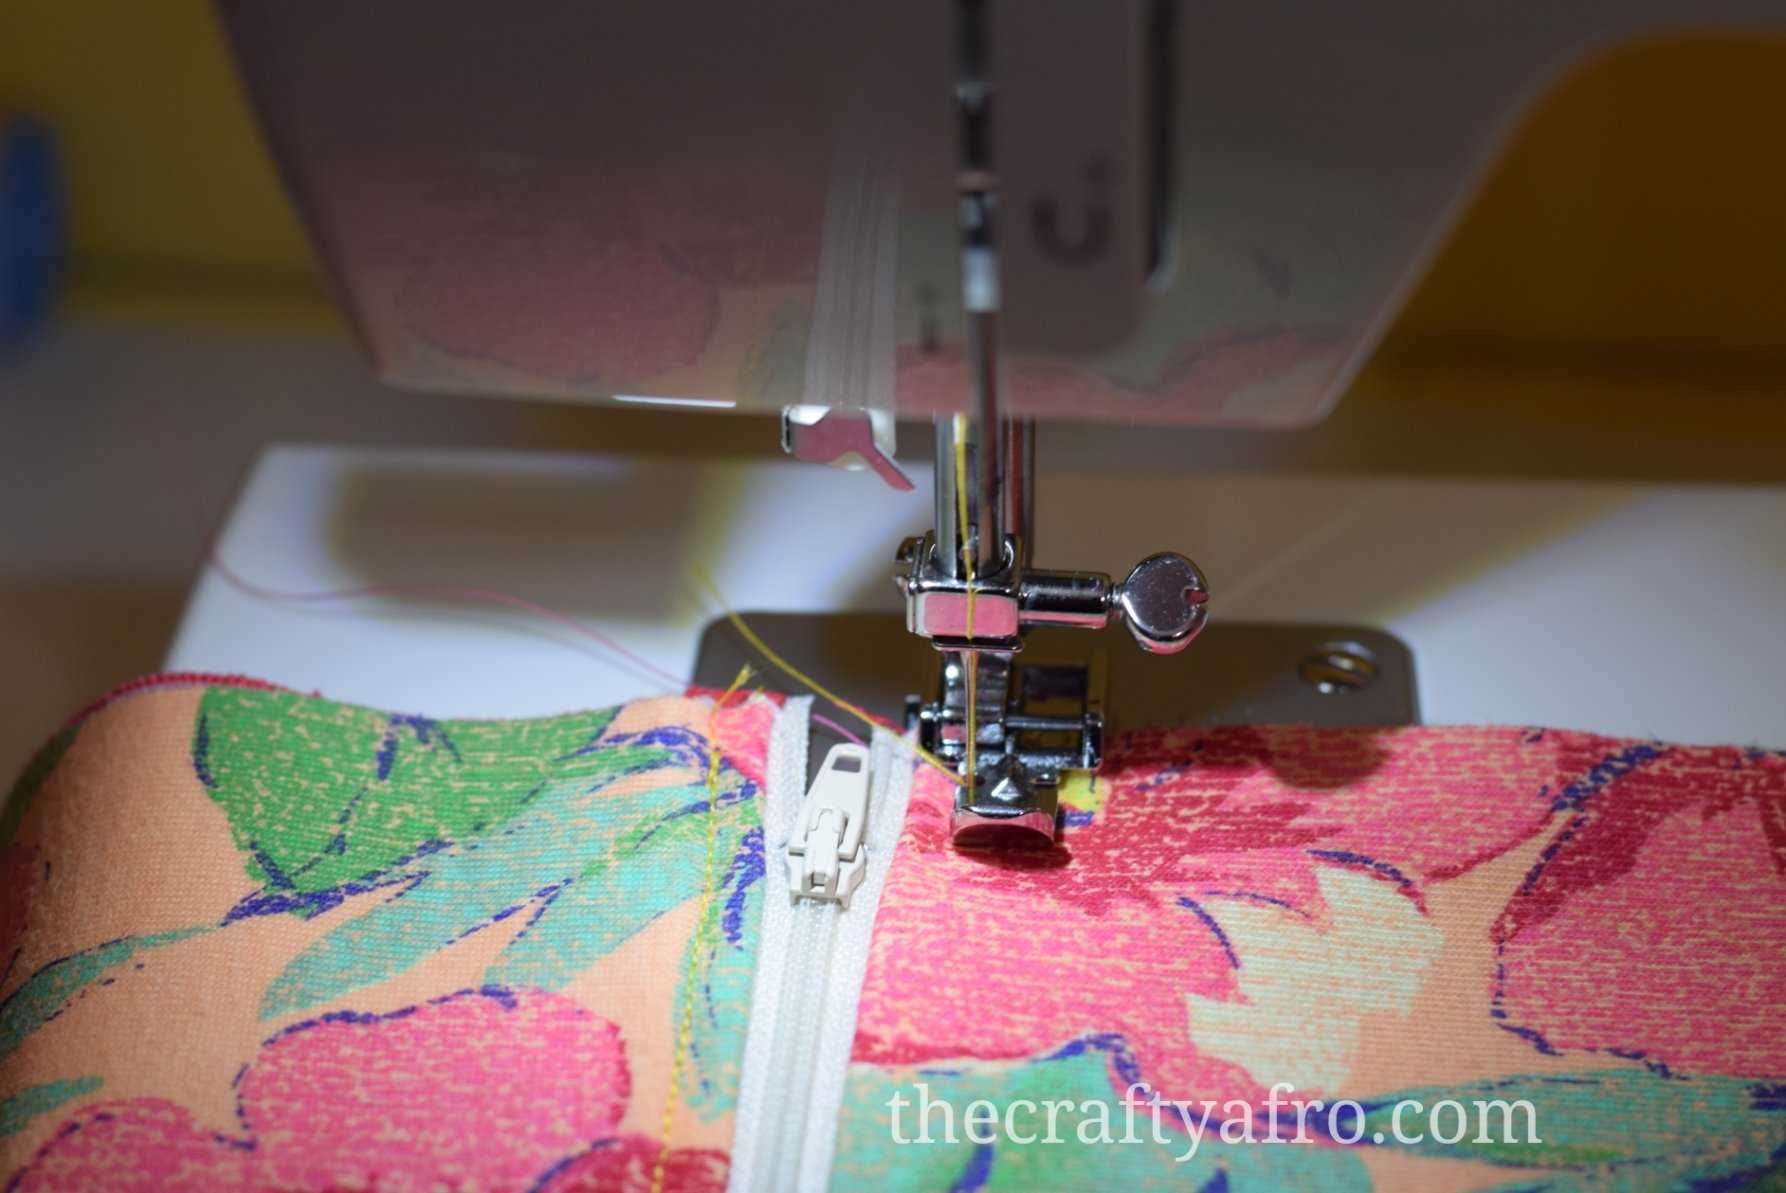 Fabric is placed in the sewing machine to add top stitch.